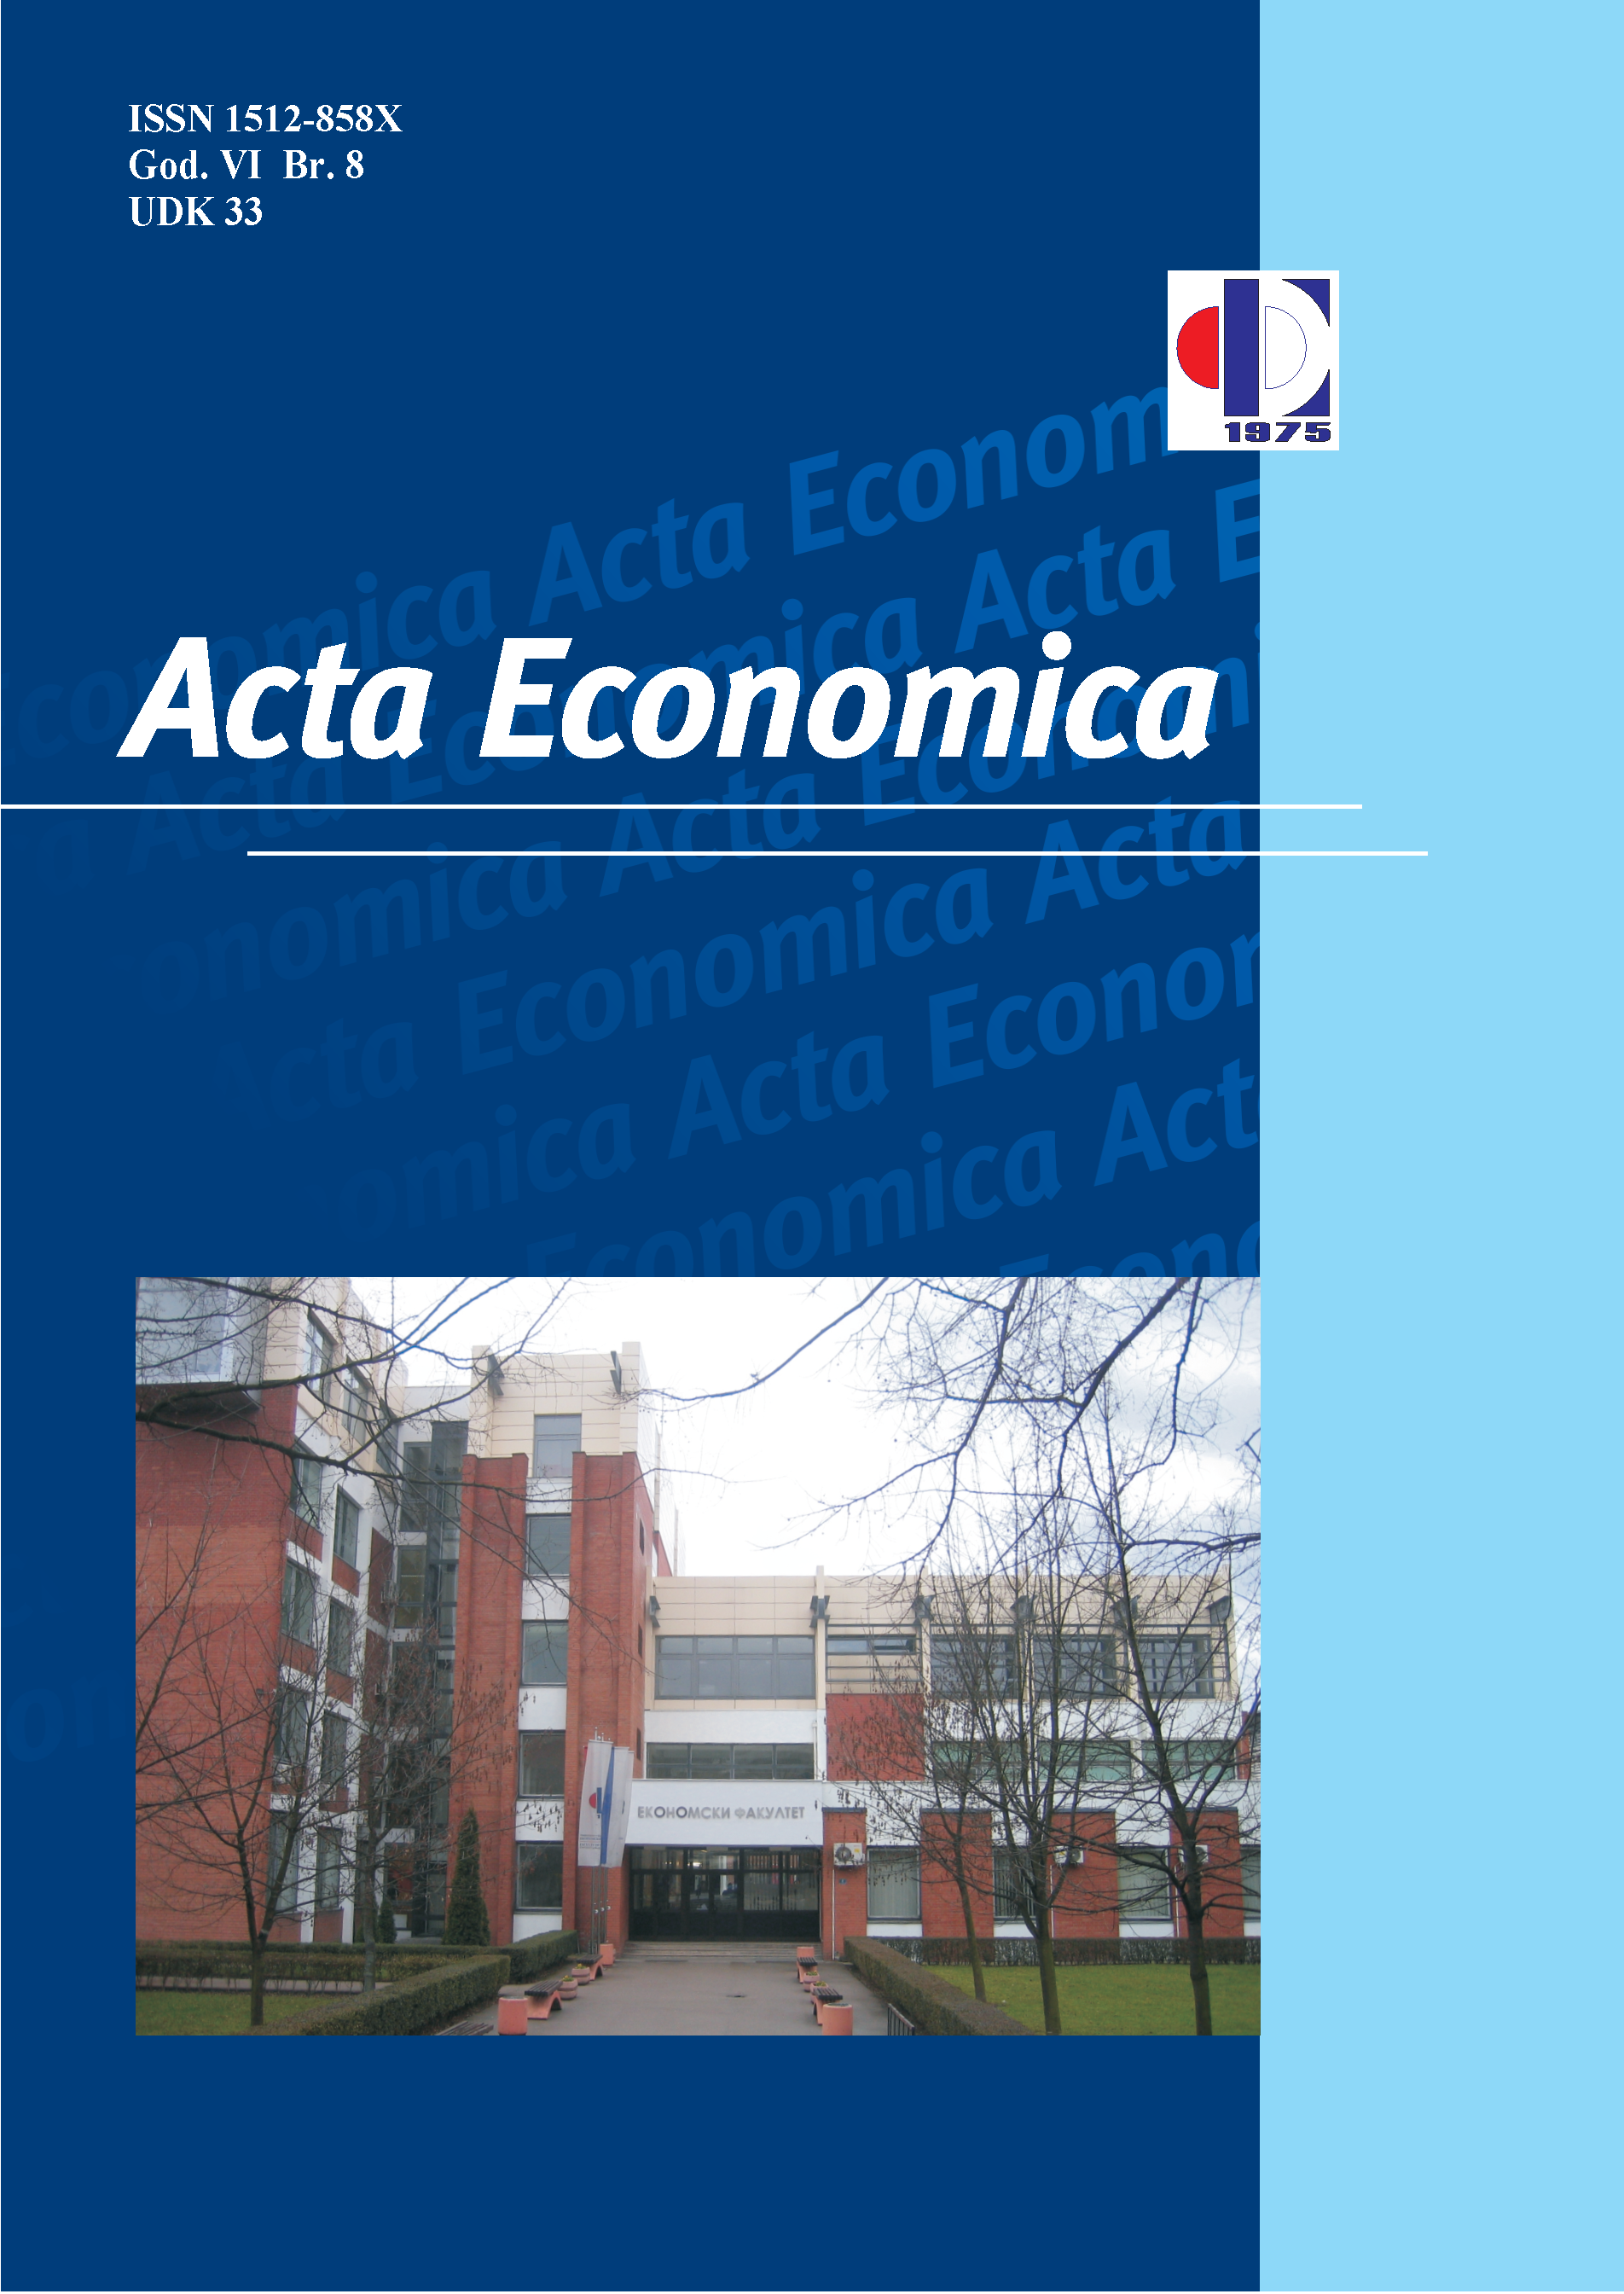 View Vol. 18 No. 33 (2020): Acta Economica